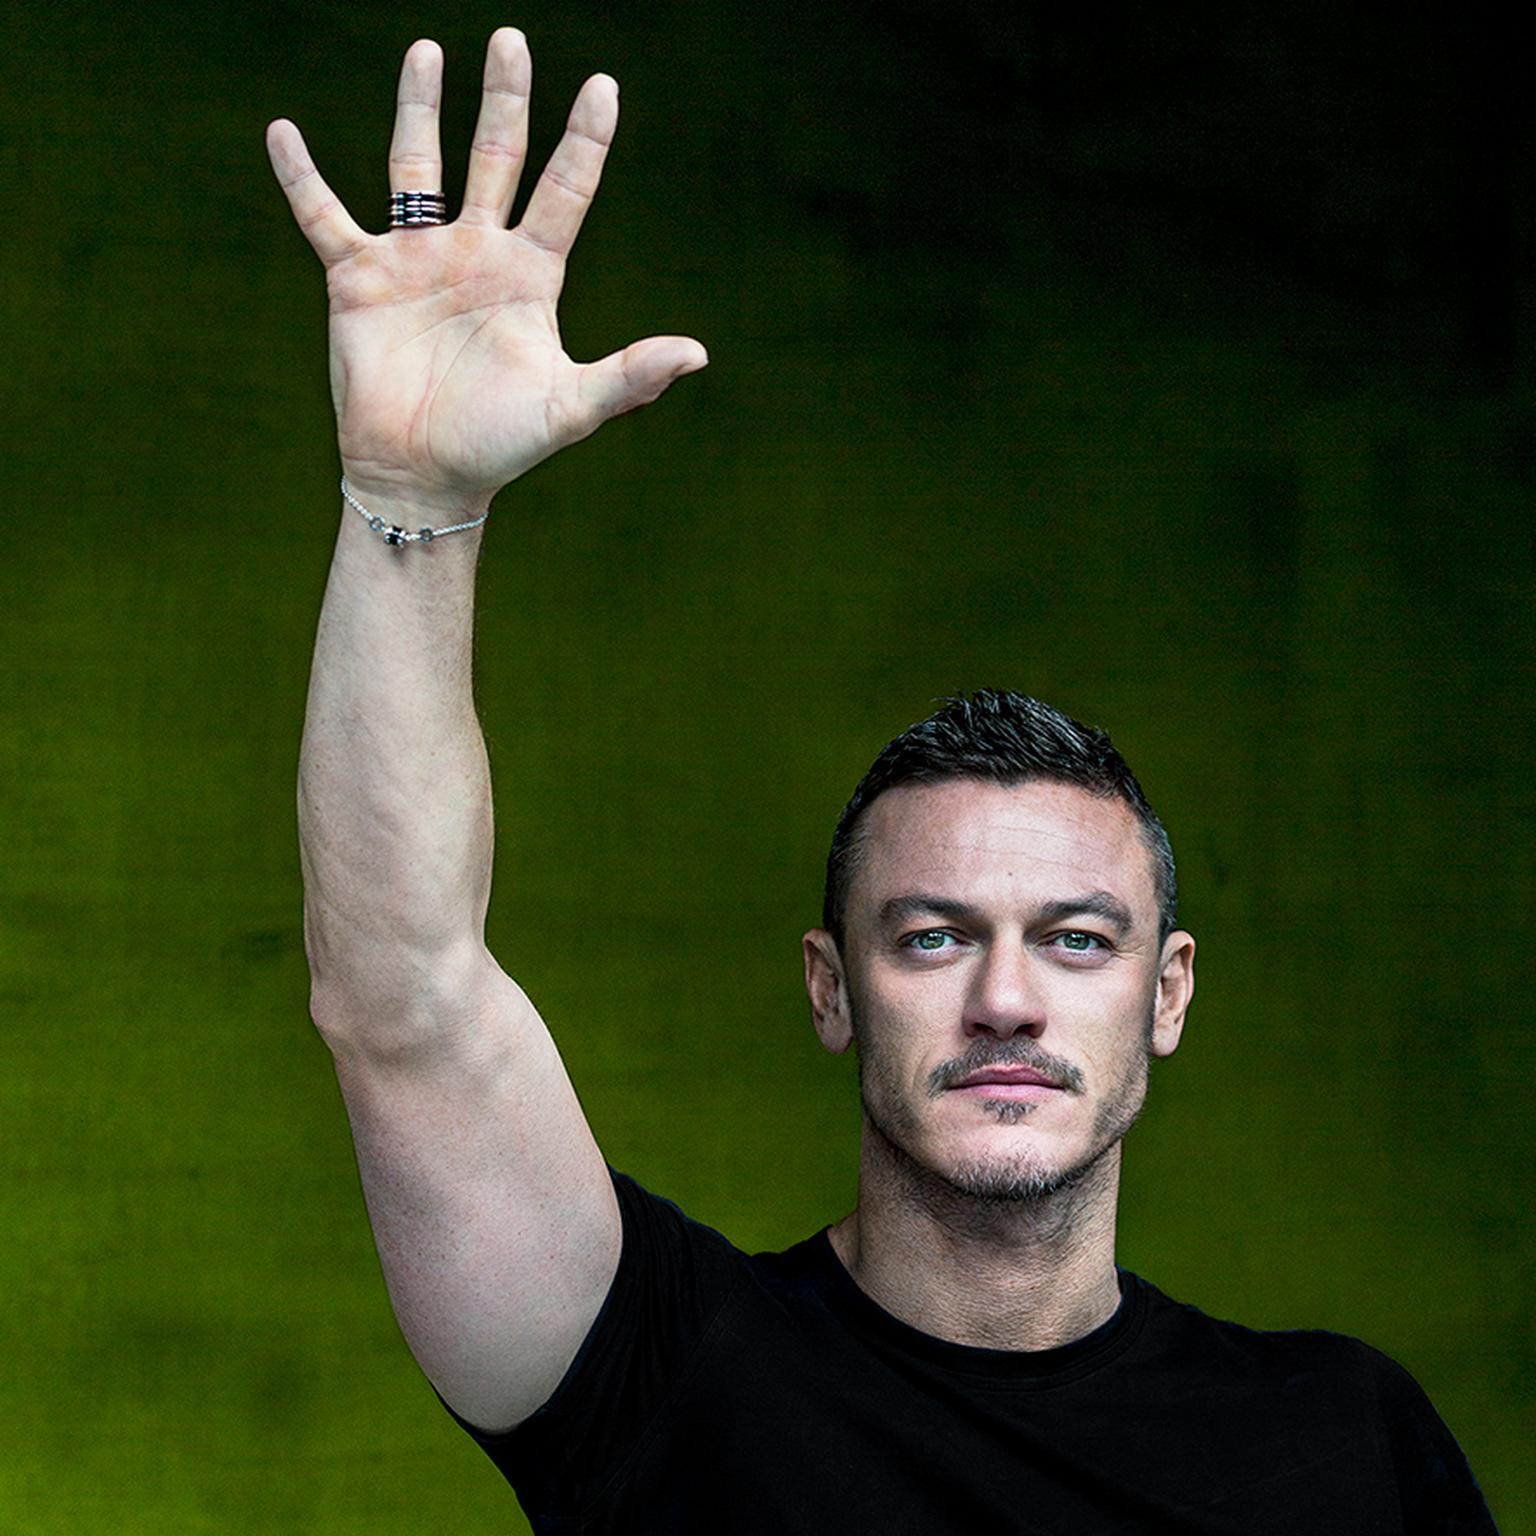 Luke Evans in Bulgari's Raise your Hand campaign